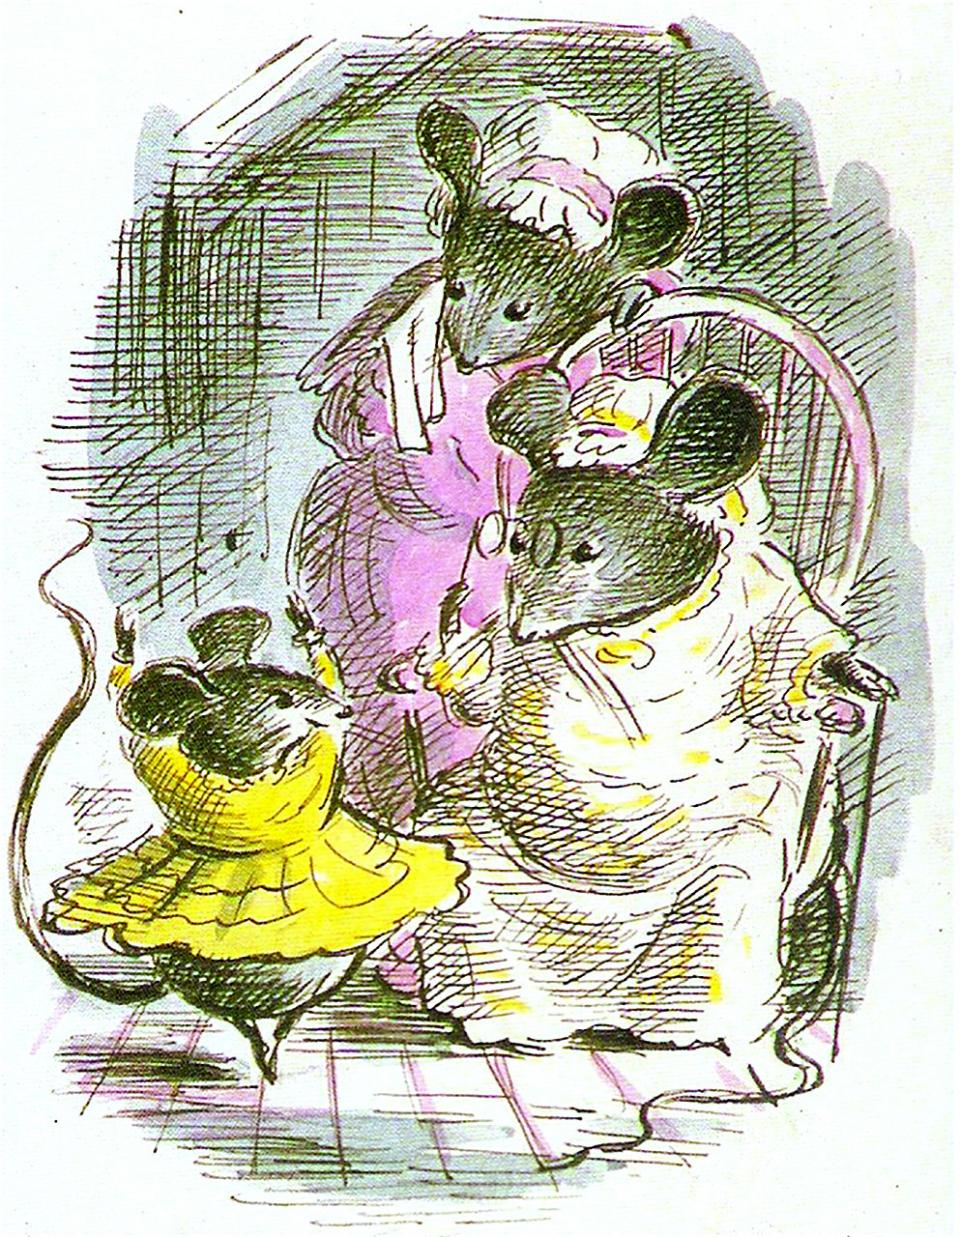 'Desbarollda, the Waltzing Mouse' - Edward Ardizzone (1947)